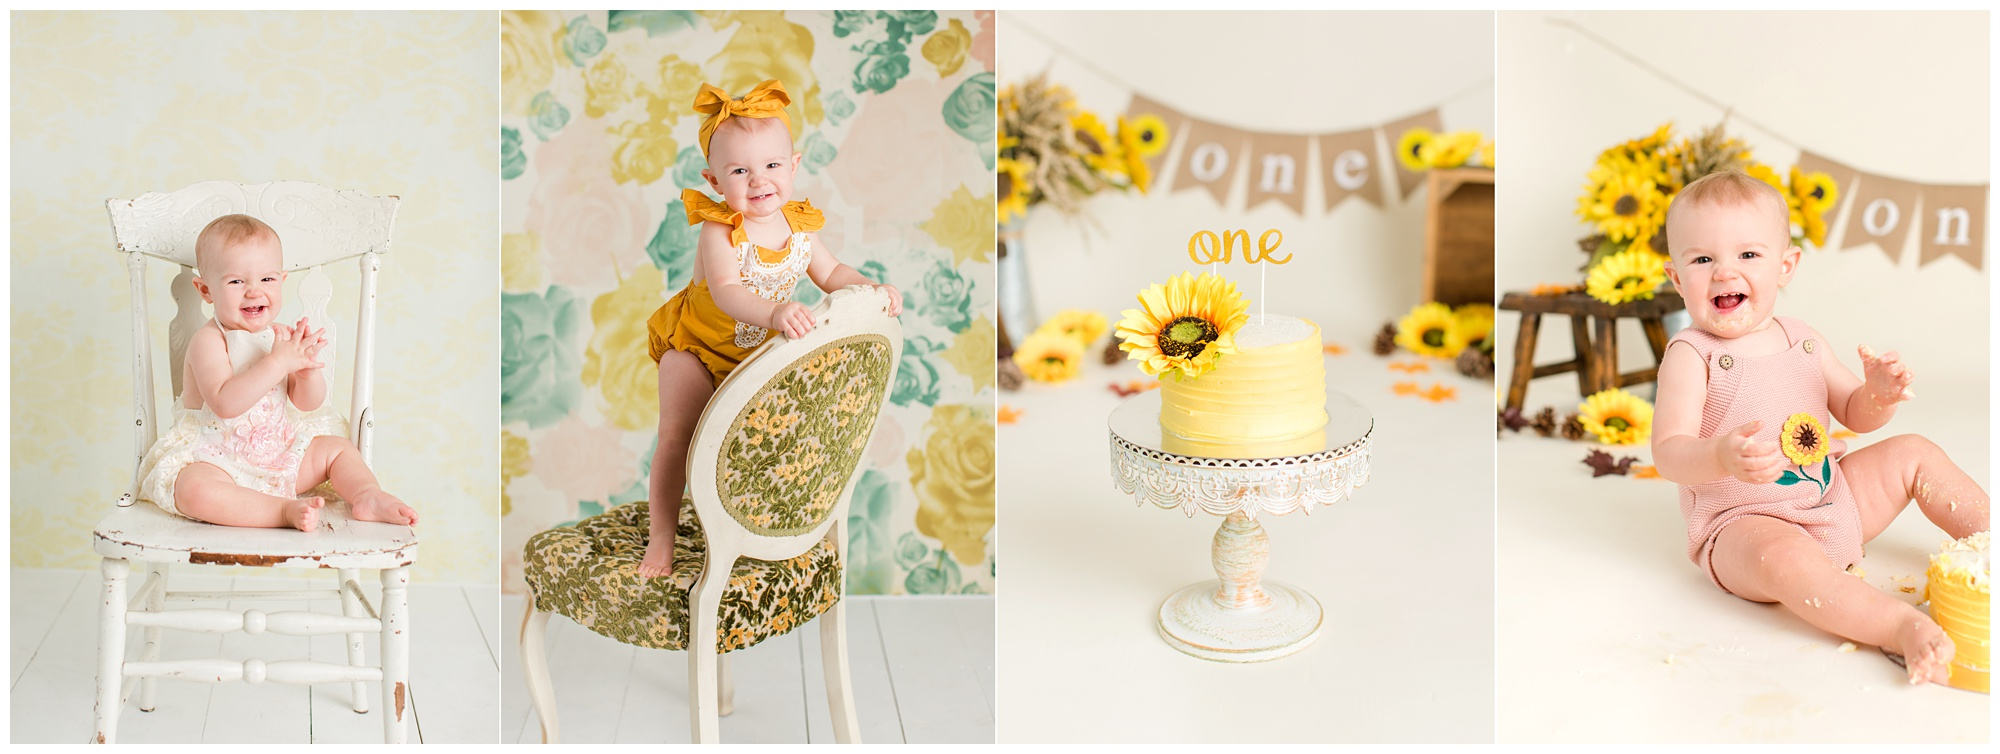 Baby Nora is One!